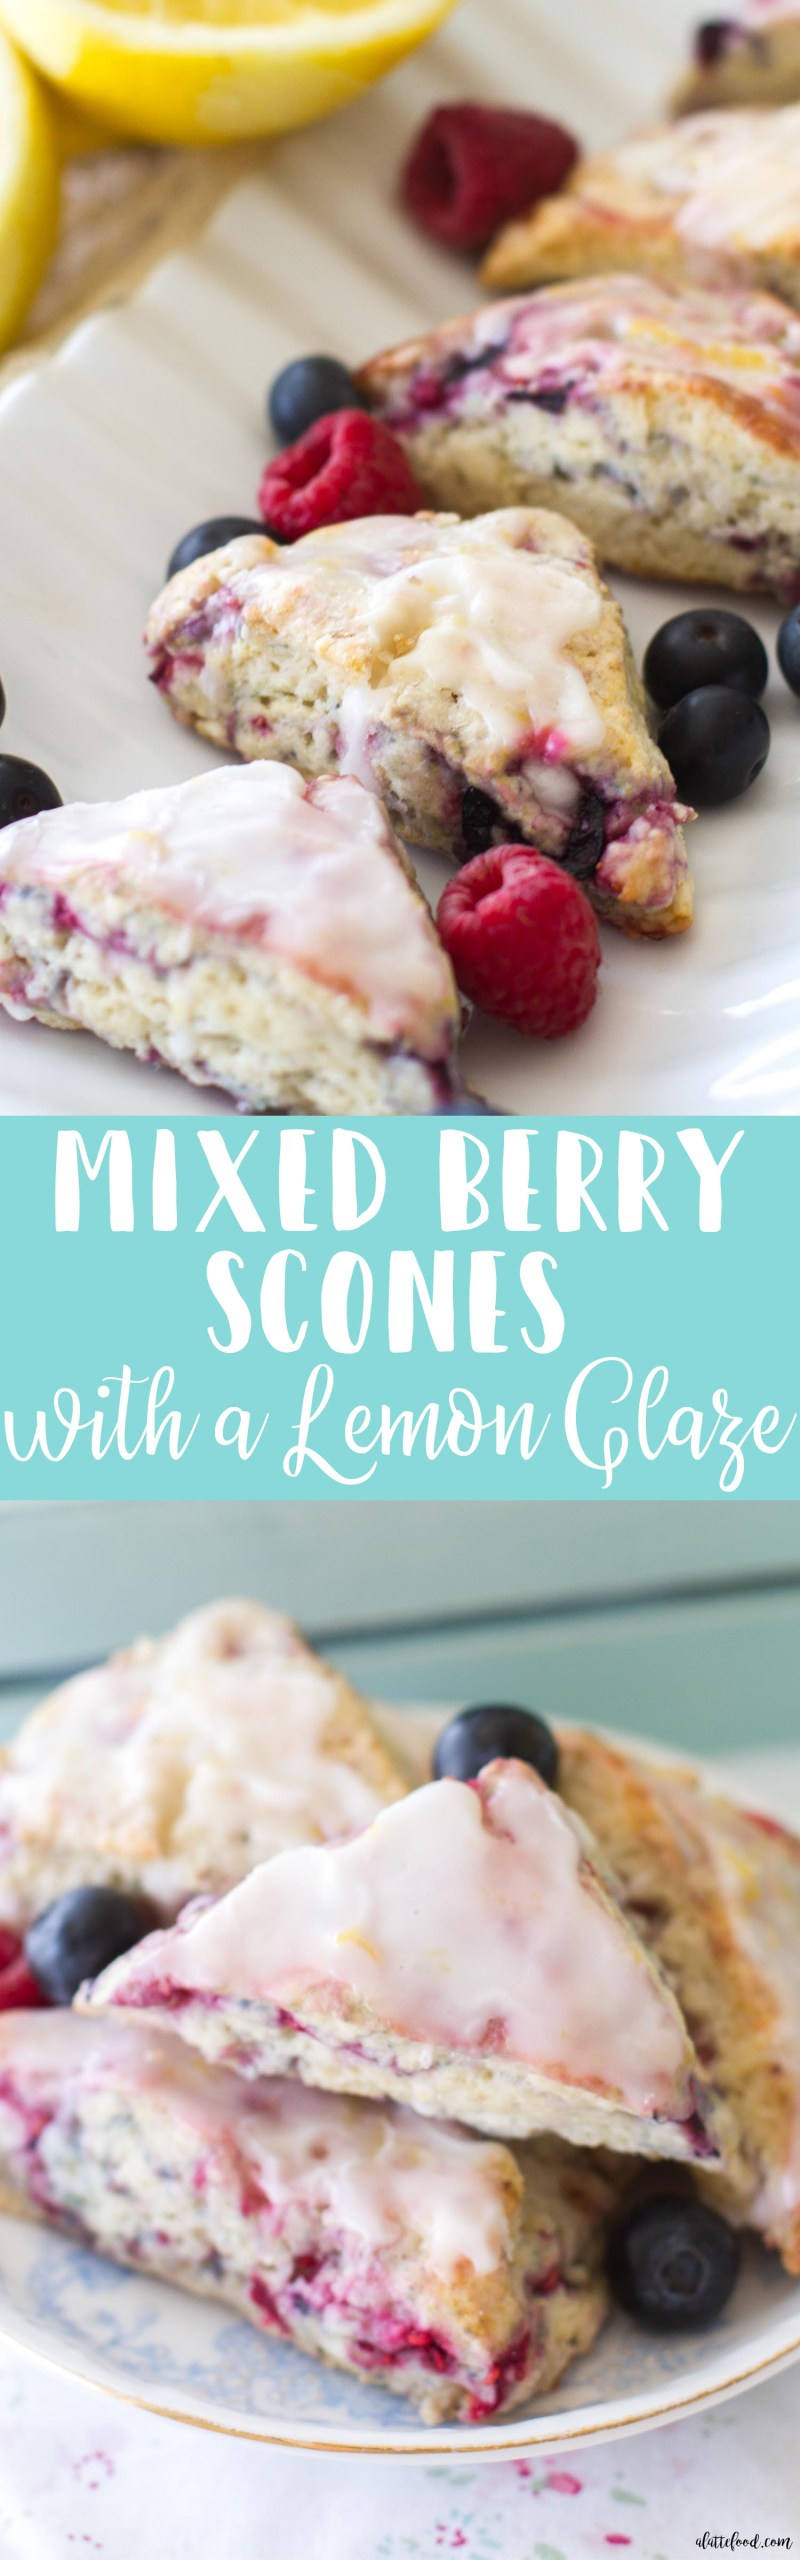 These mini mixed berry scones are full of blueberries and raspberries and drizzled with a sweet lemon glaze. A simple and elegant breakfast, brunch, or dessert! And, ready for any 4th of July party!